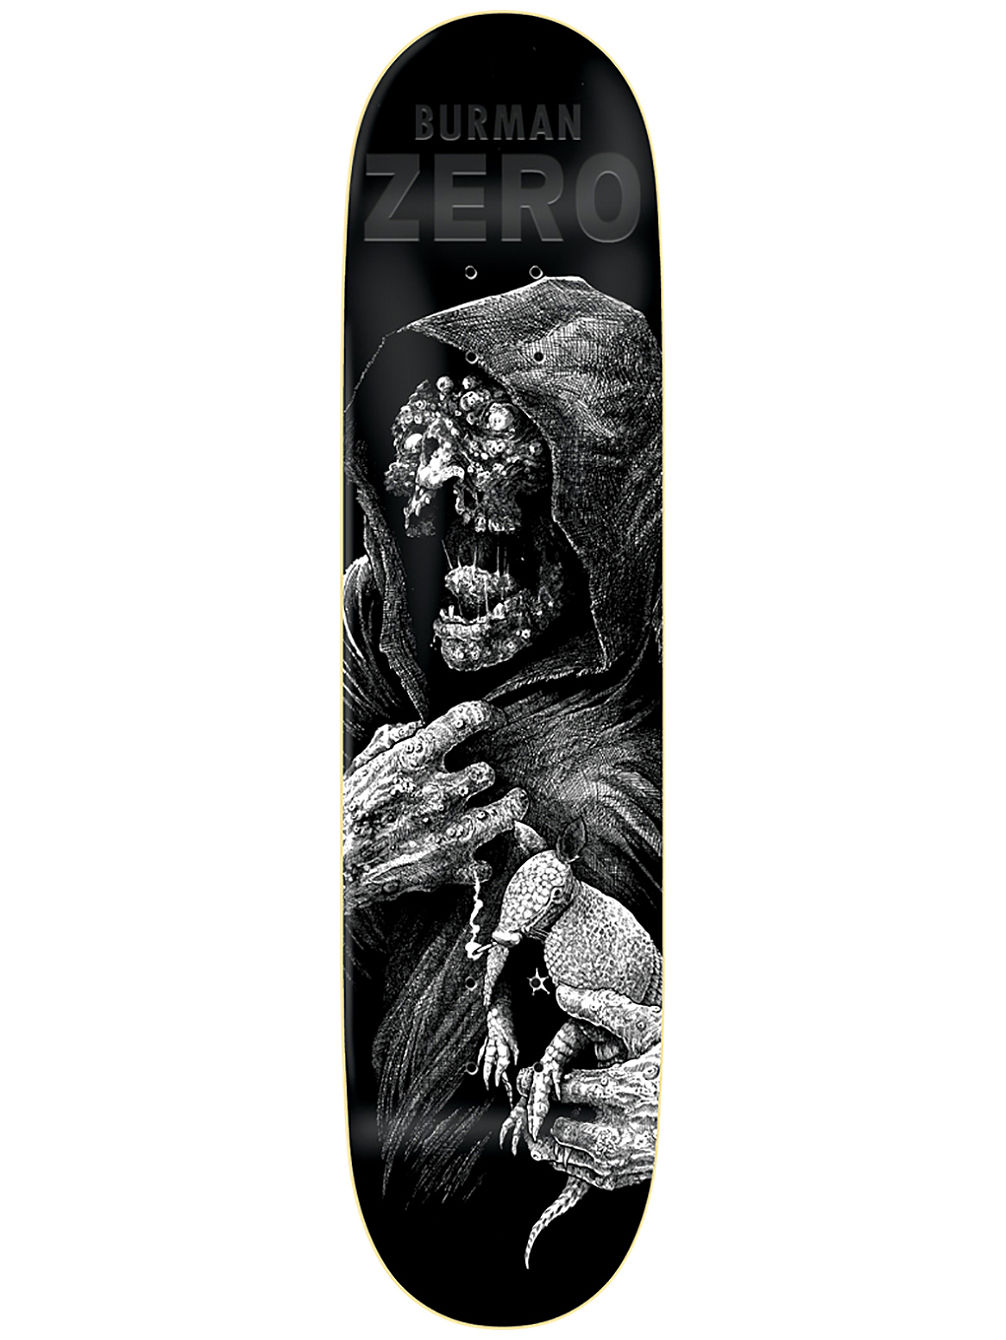 zero-burman-faces-of-death-8375-skateboard